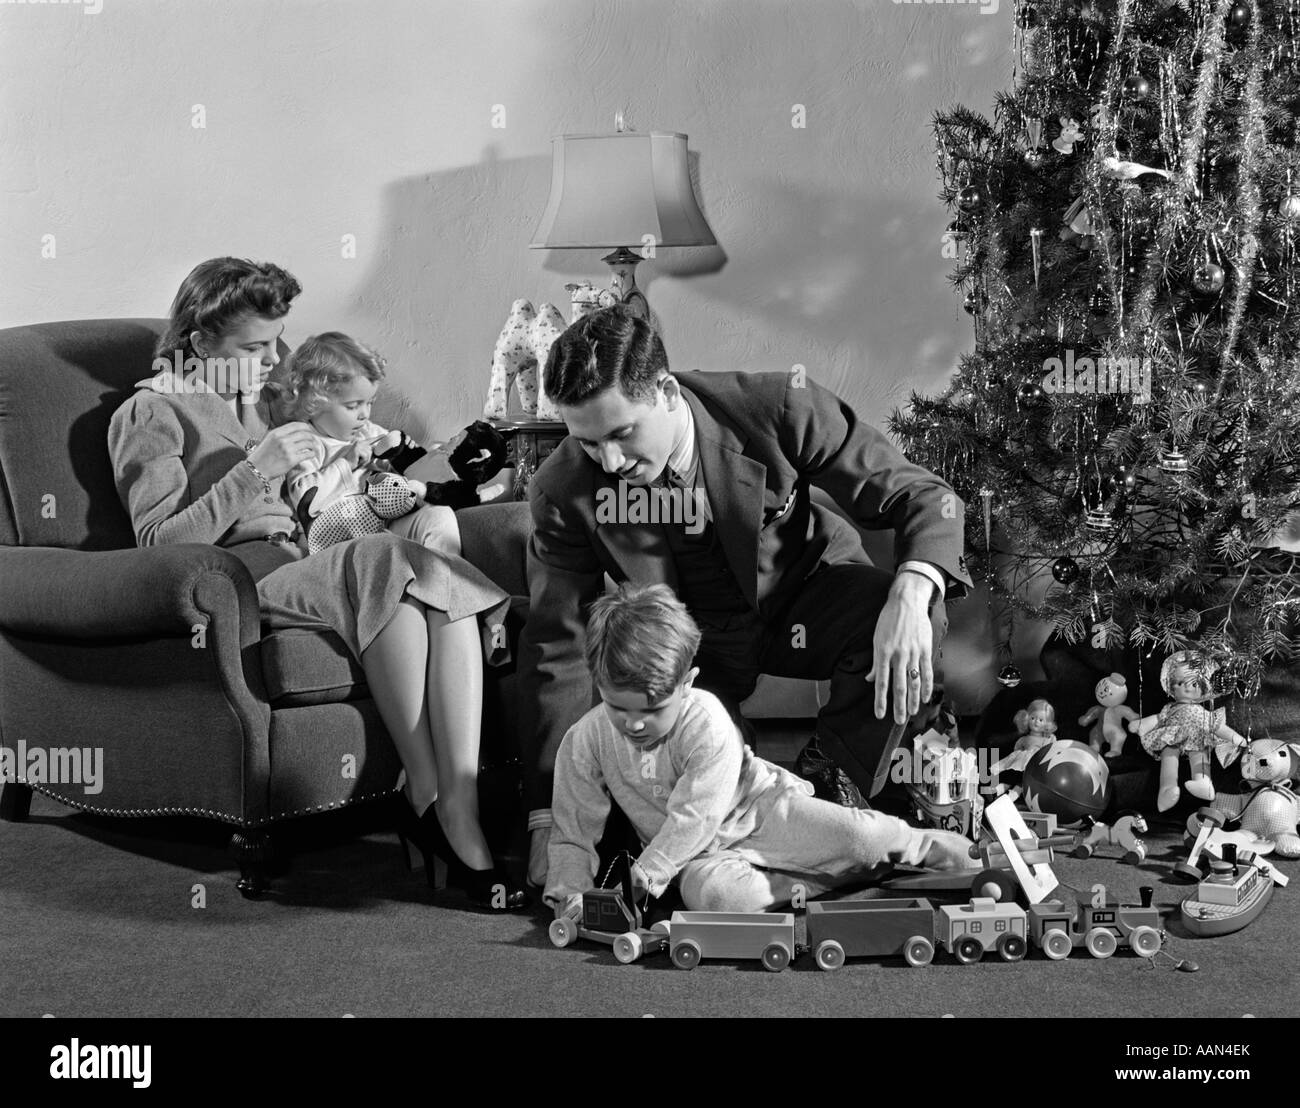 1930s 1940s FAMILY AROUND CHRISTMAS TREE BOY PLAYING WITH TRAIN DAD HELPING MOM AND GIRL IN CHAIR - Stock Image